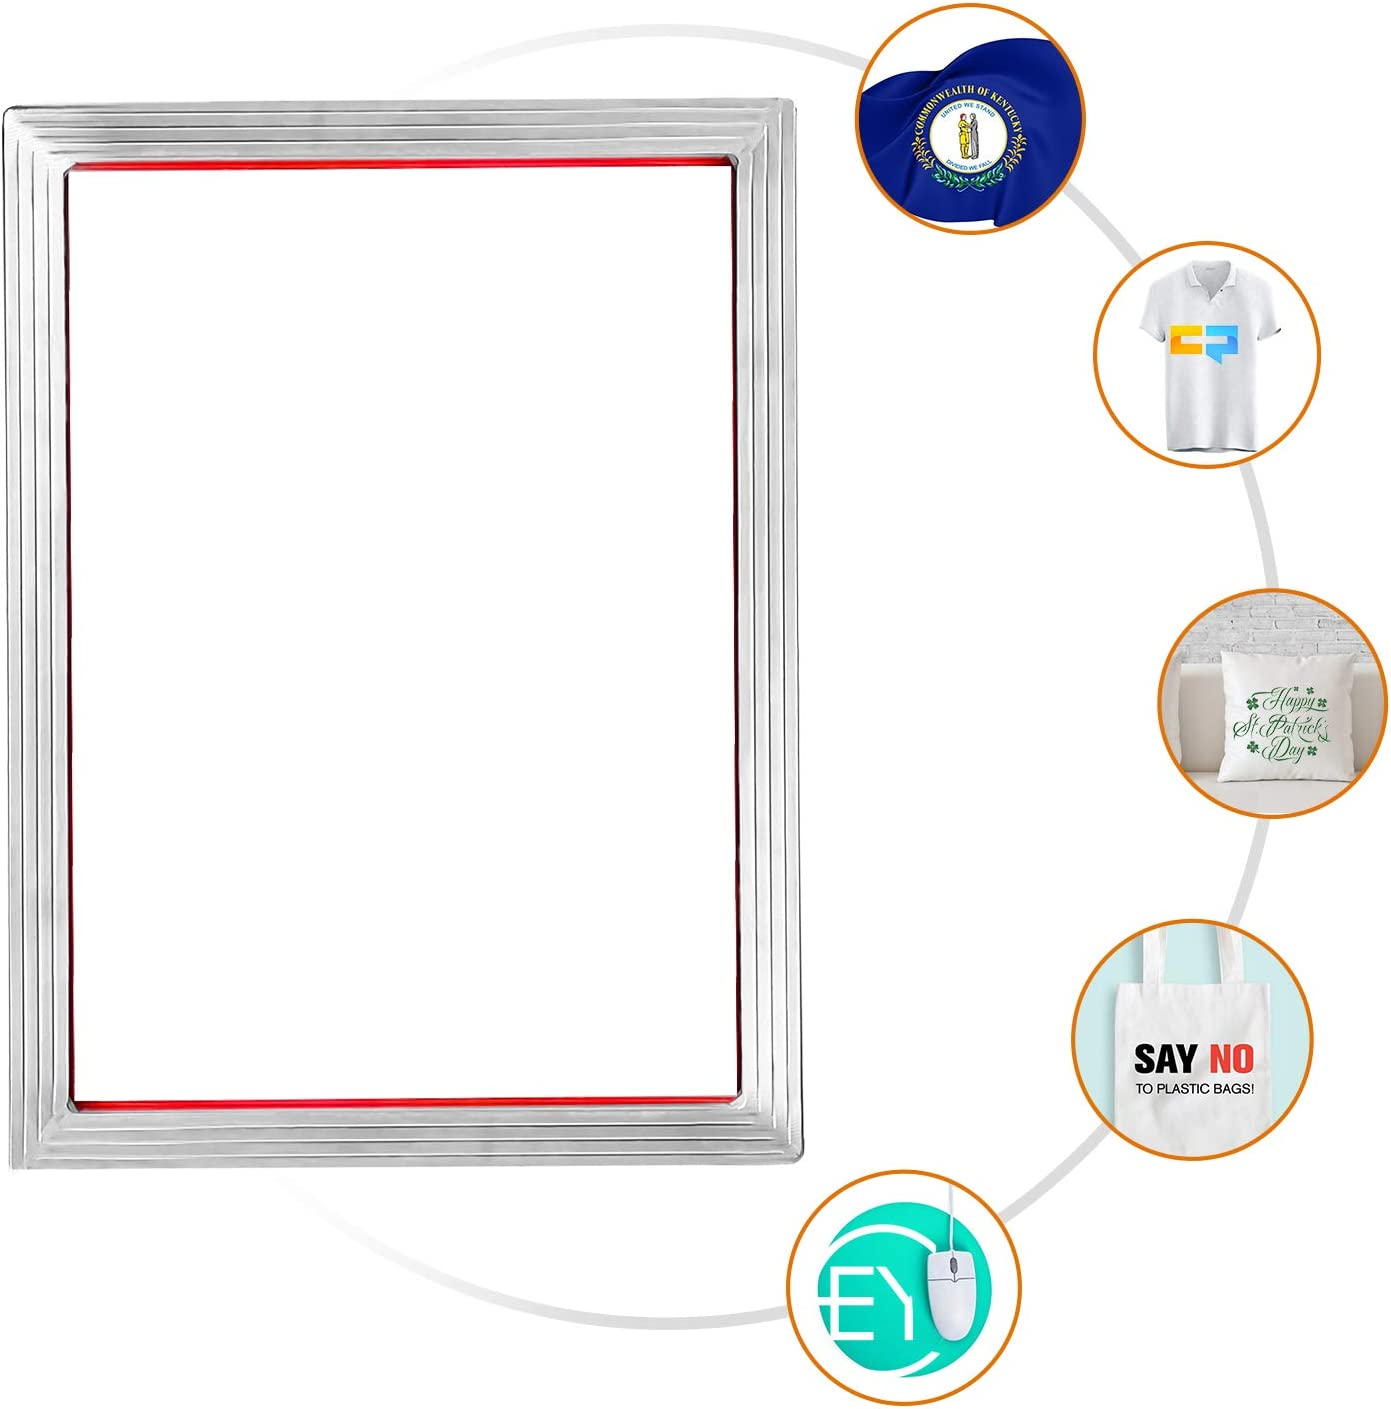 Inkjet Transparency Film and Mask Tape Arshvyl Screen Printing Starter Kit Include 8 x 10 Inch Aluminum Silk Screen Printing Frame with 110 White Mesh Screen Printing Squeegees